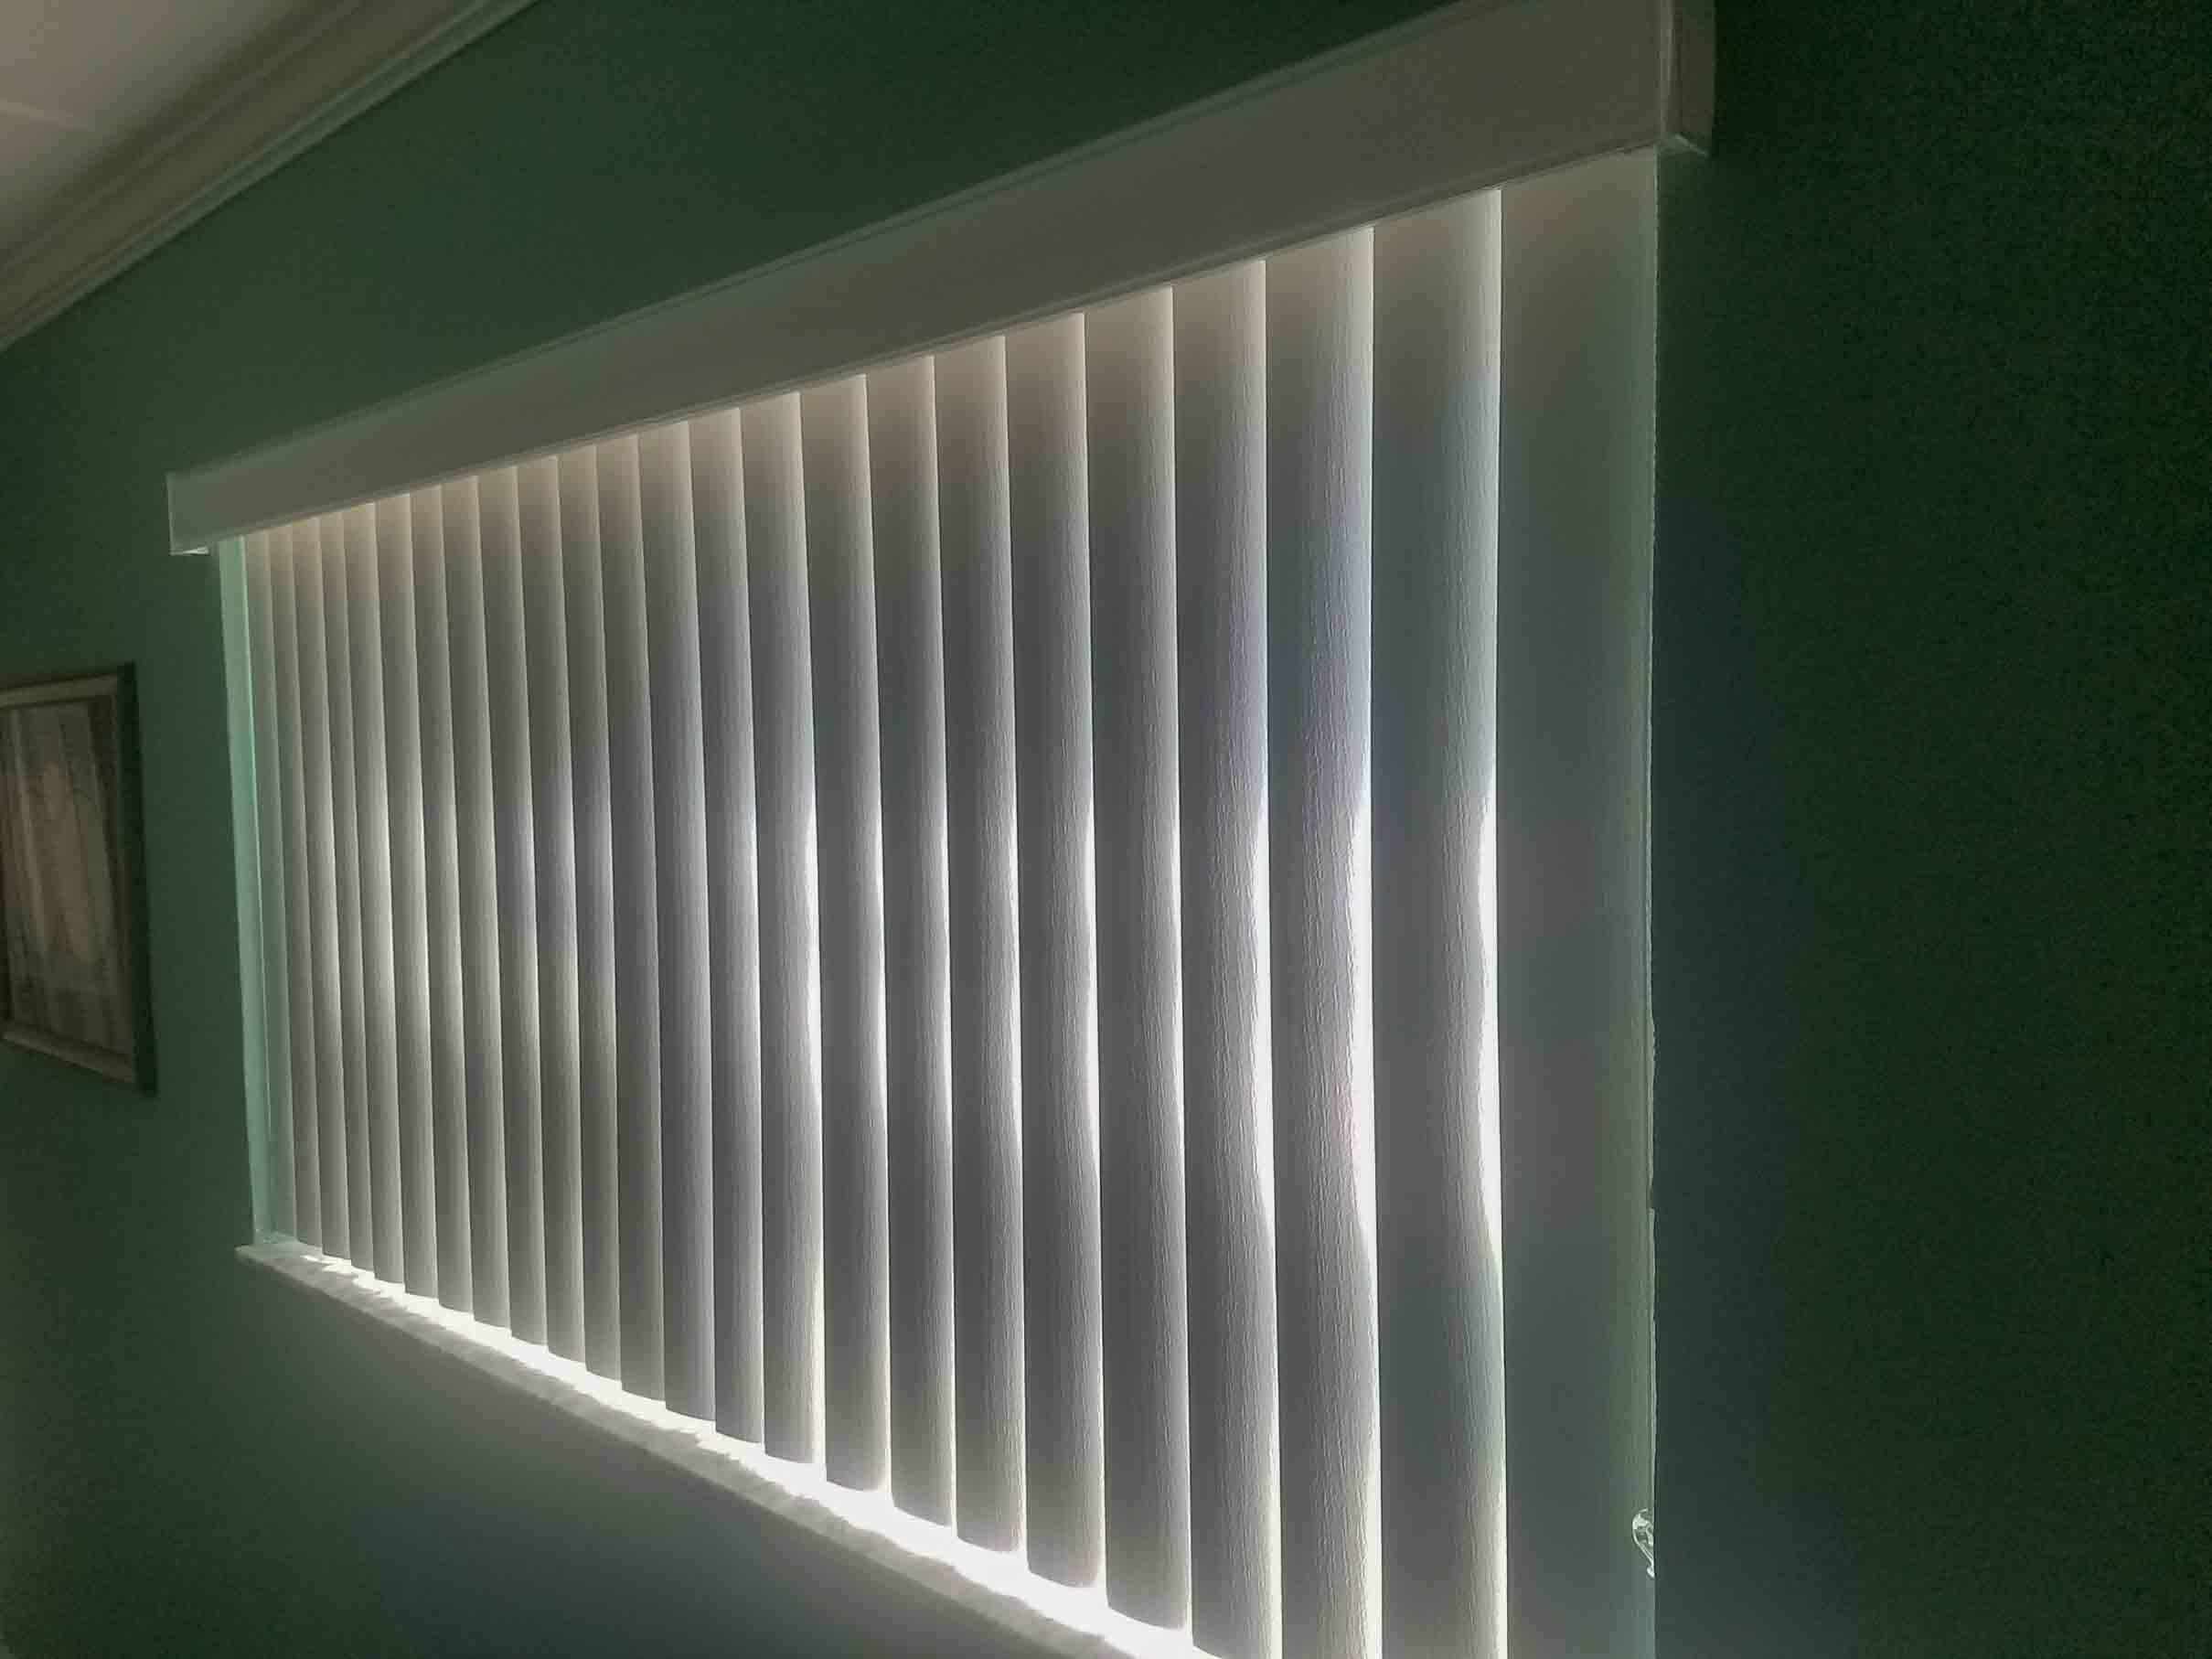 wood blinds gallery WOOD BLINDS GALLERY 20180317 130248